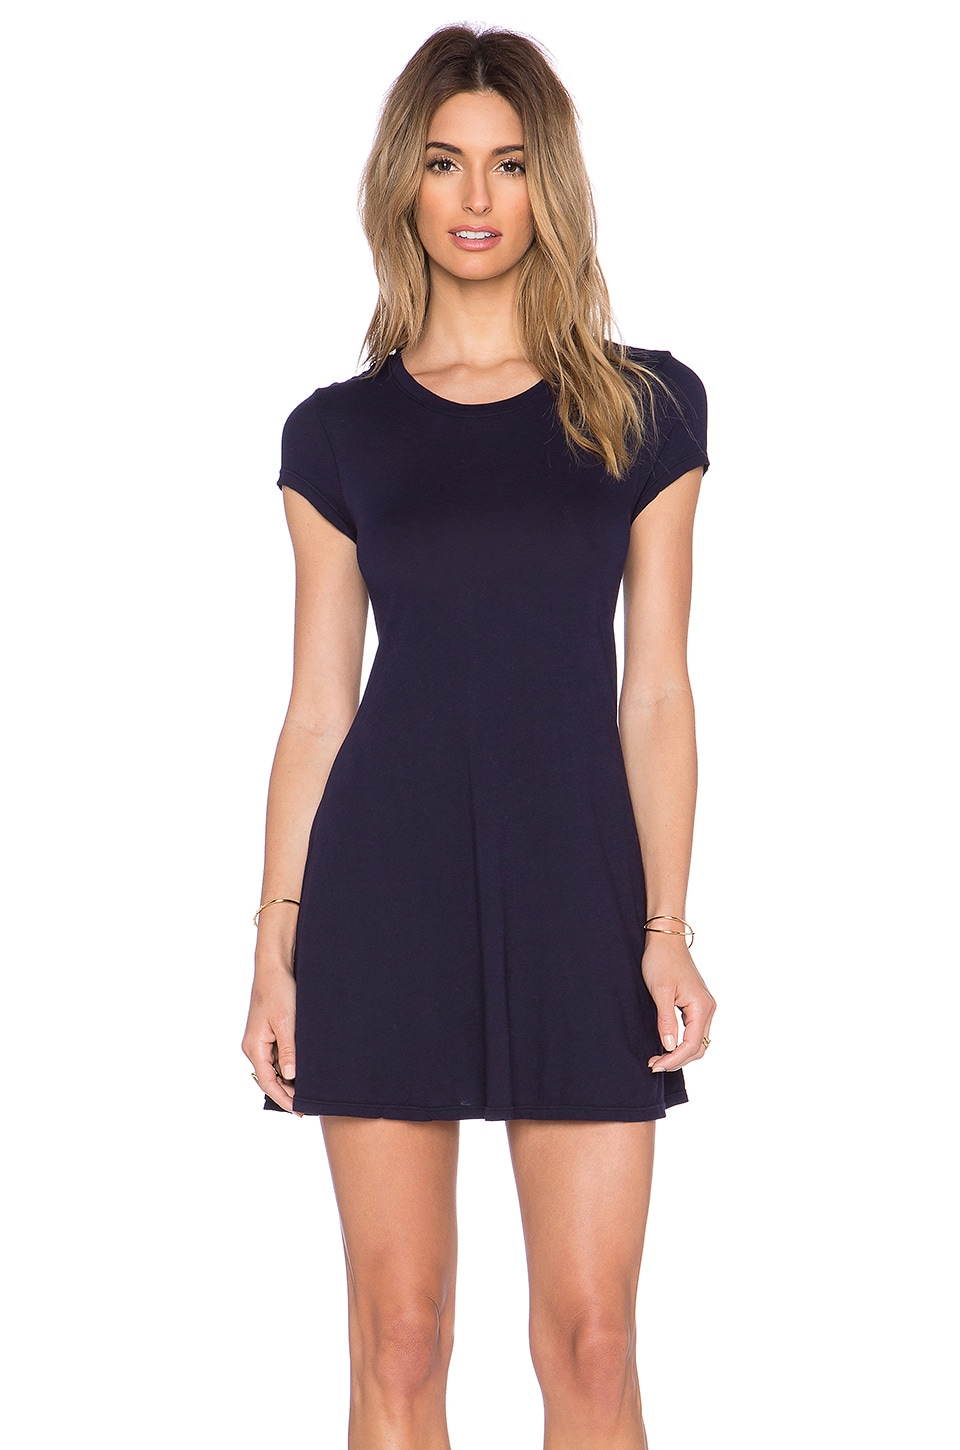 Bobi Light Weight Jersey Tee Dress in Night Sky